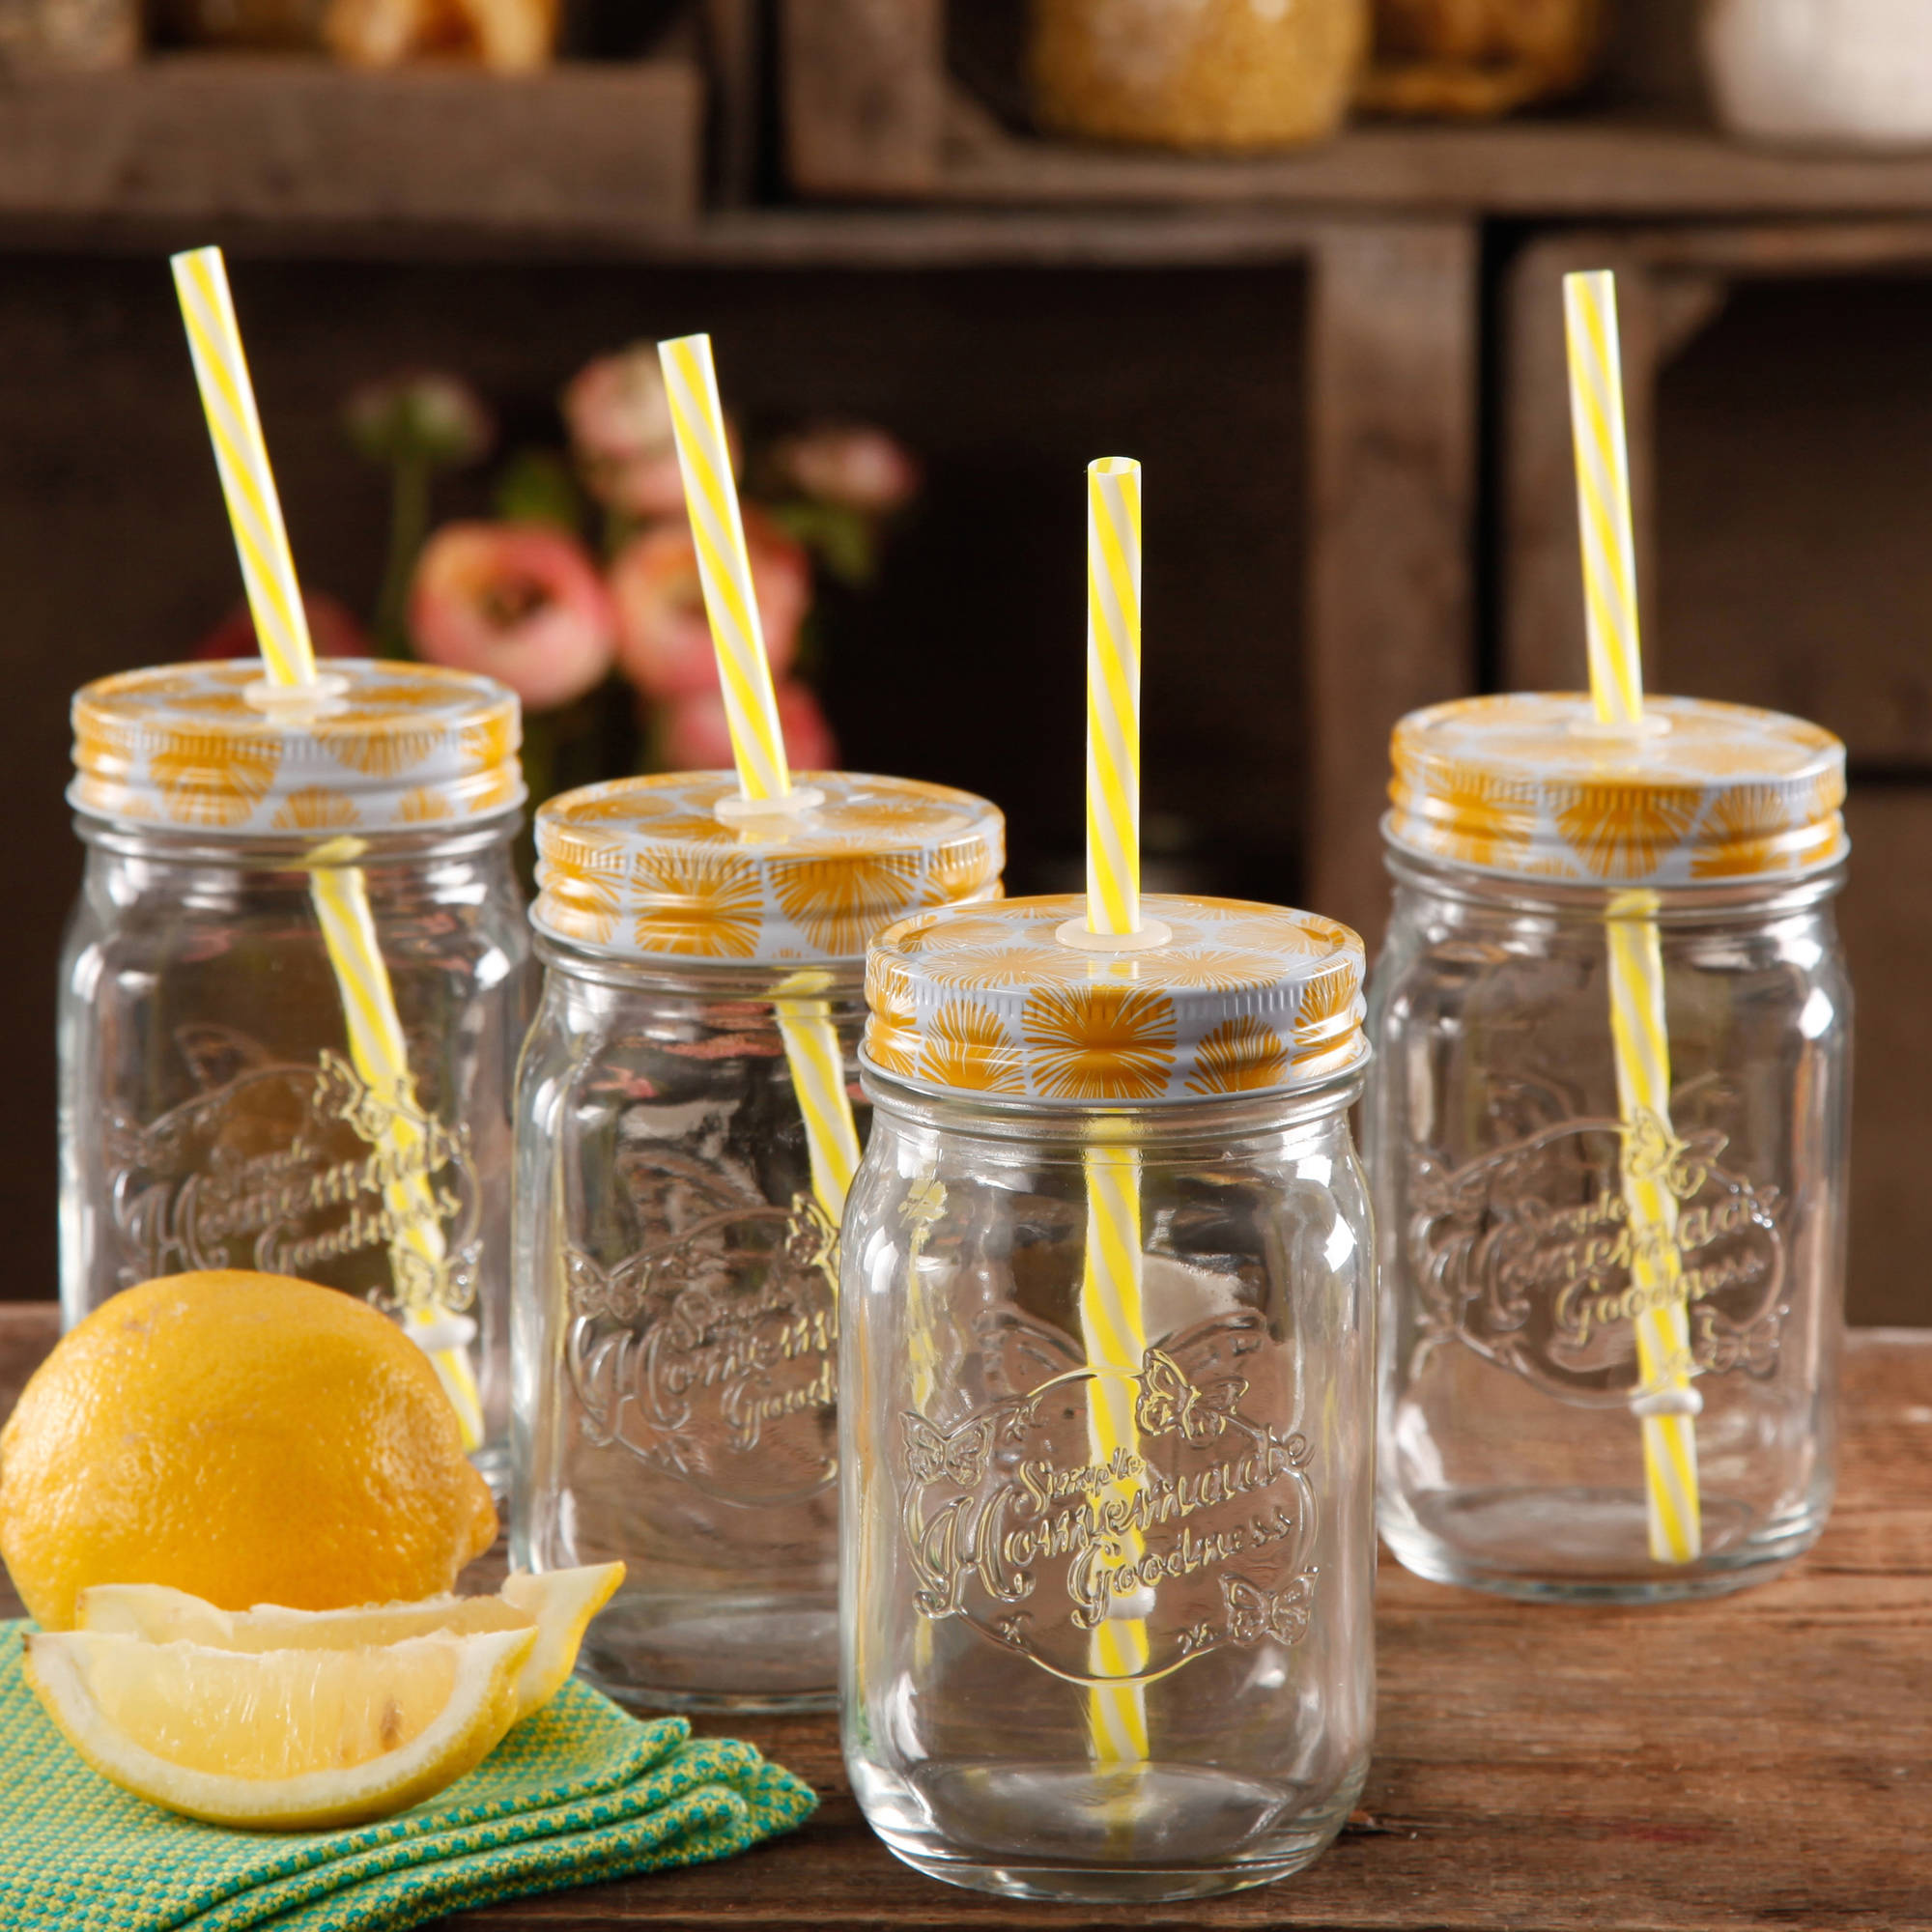 The Pioneer Woman Simple Homemade Goodness 16-Ounce Mason Jars with Lid and Straw, Set of 4